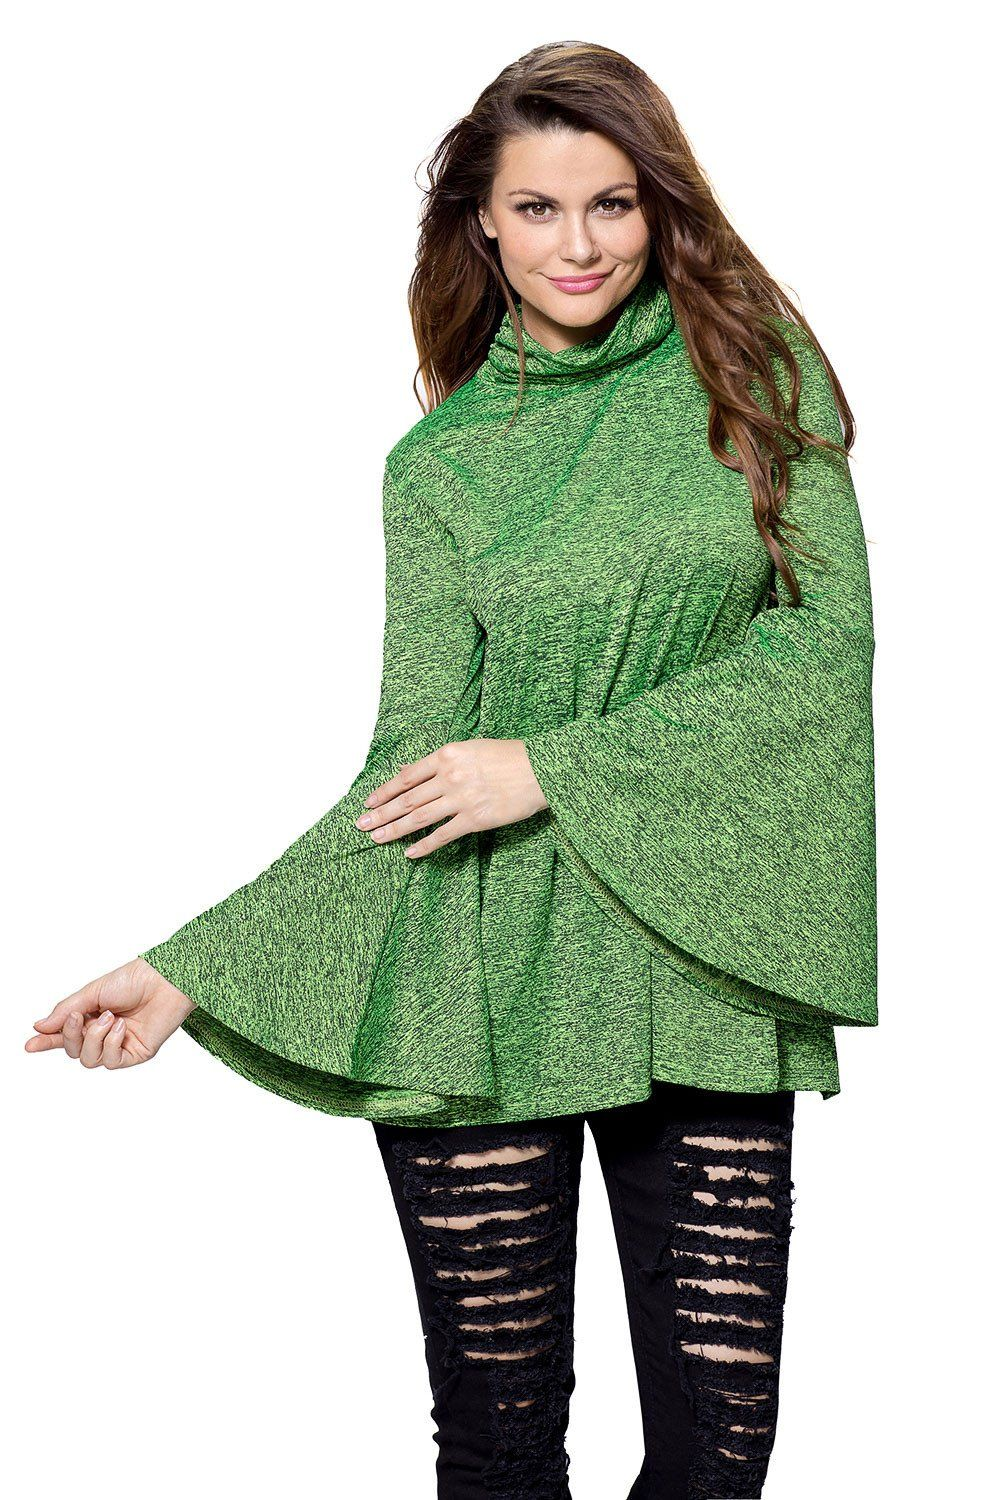 7a85c7eb8037d Chicloth Green Flared Bell Sleeve Knit Blouse